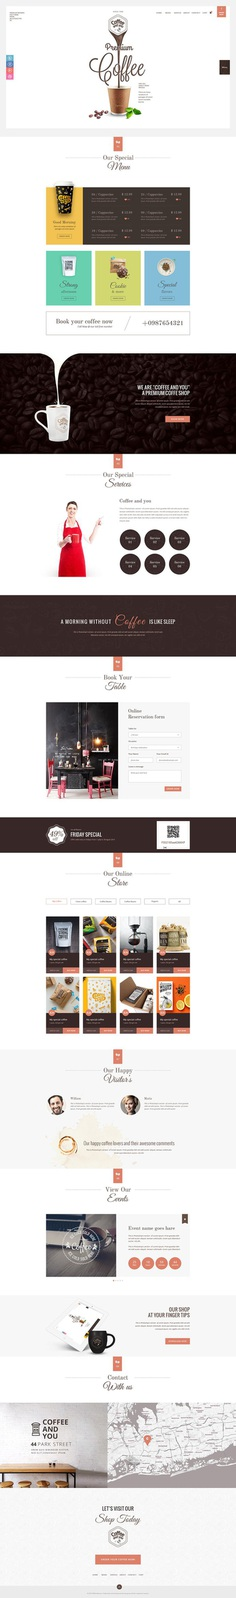 Website Template for Coffee Shop #website #coffee